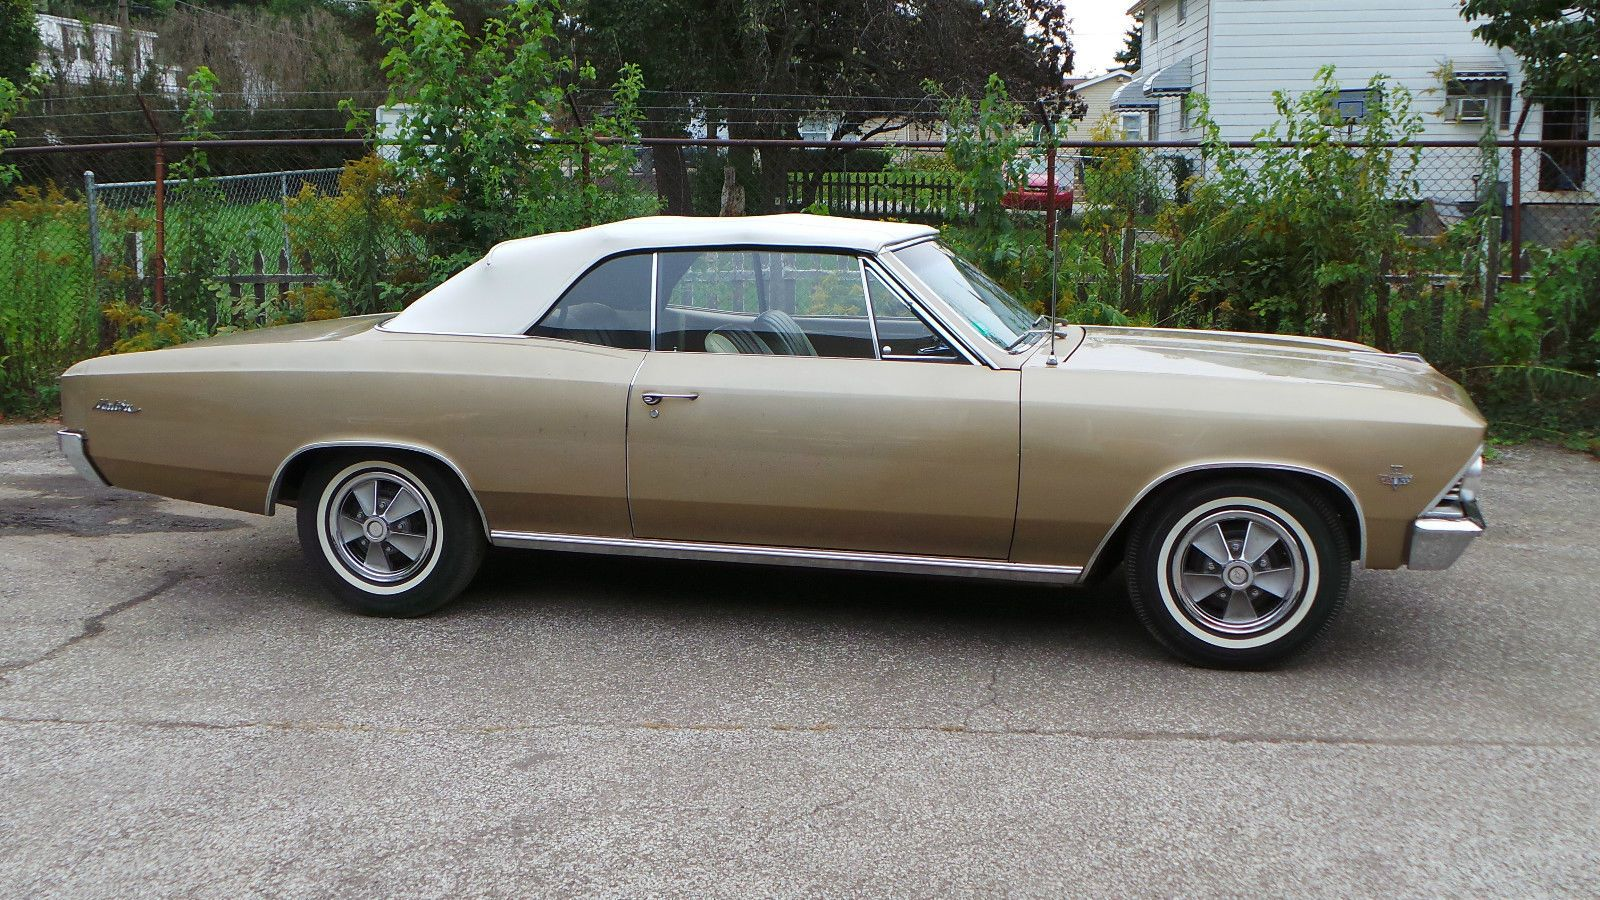 1966 Chevrolet Malibu Convertible | Project Cars For Sale ...